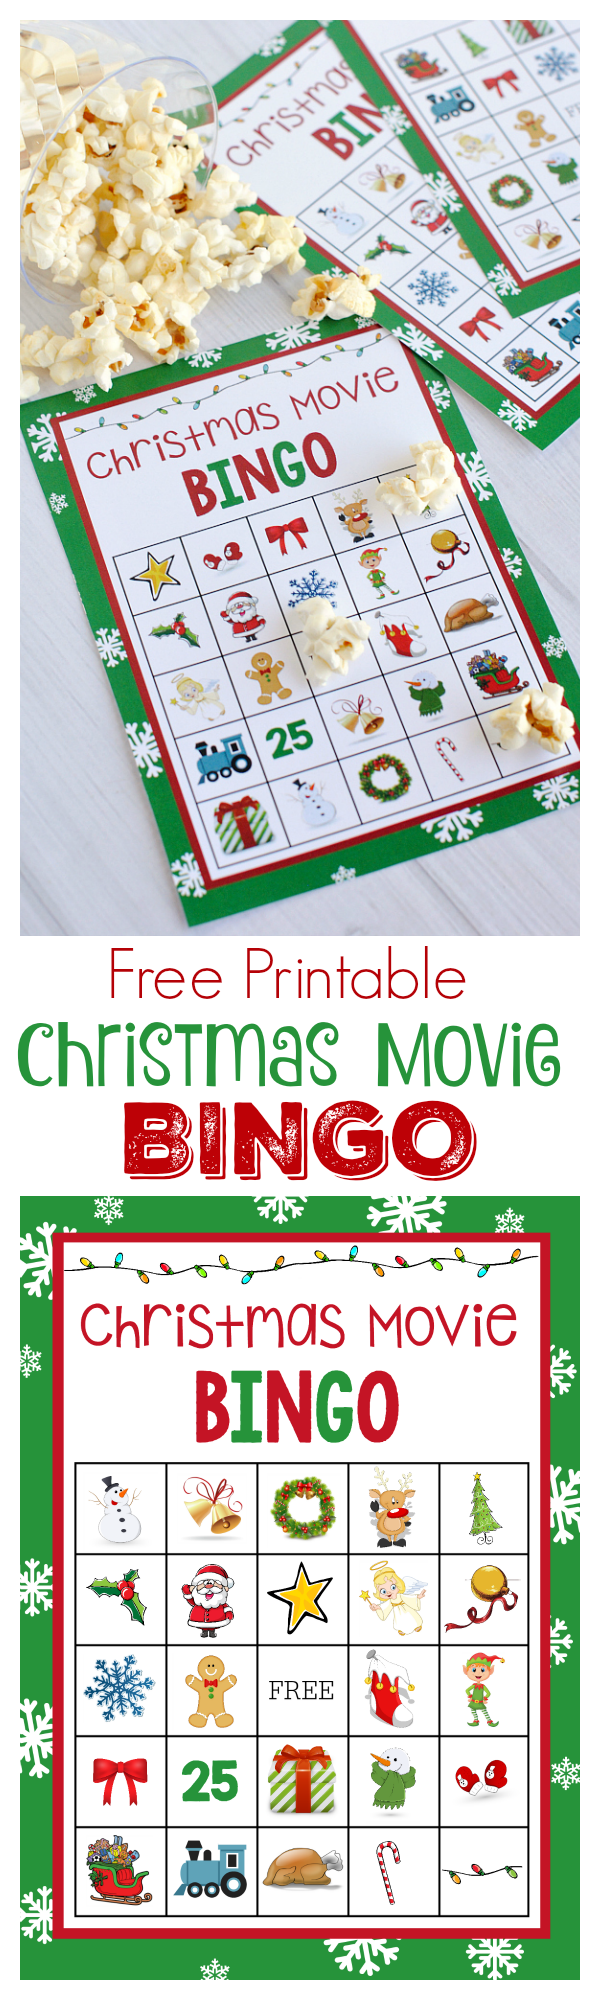 Christmas Party Ideas Games Part - 16: Christmas Movie Night Party Ideas, Games, Treats And More. Perfect Holiday Party  Ideas